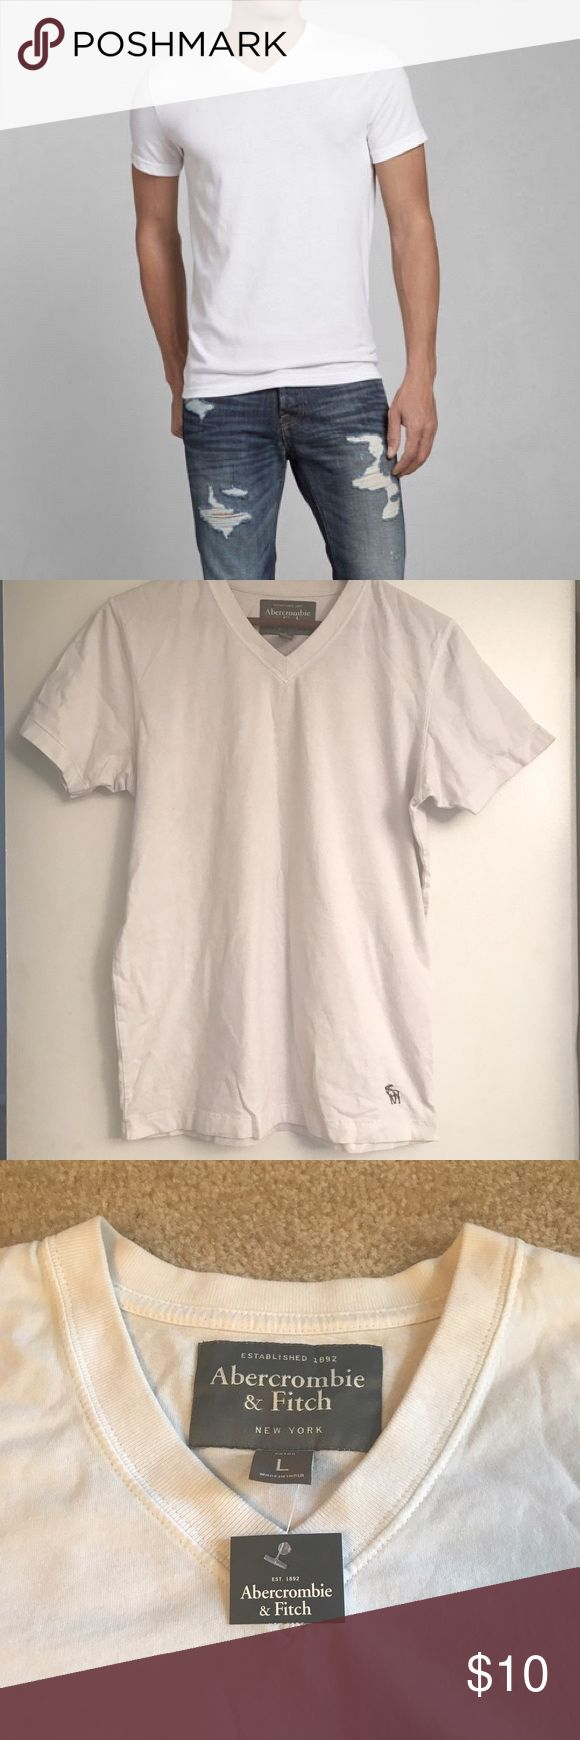 Abercrombie Men's White V-neck Tee Classic tee! This is new with tag, but was stored for a long time. There are faint marks in the inner lining shown above, but these are not seen when worn. Abercrombie & Fitch Shirts Tees - Short Sleeve